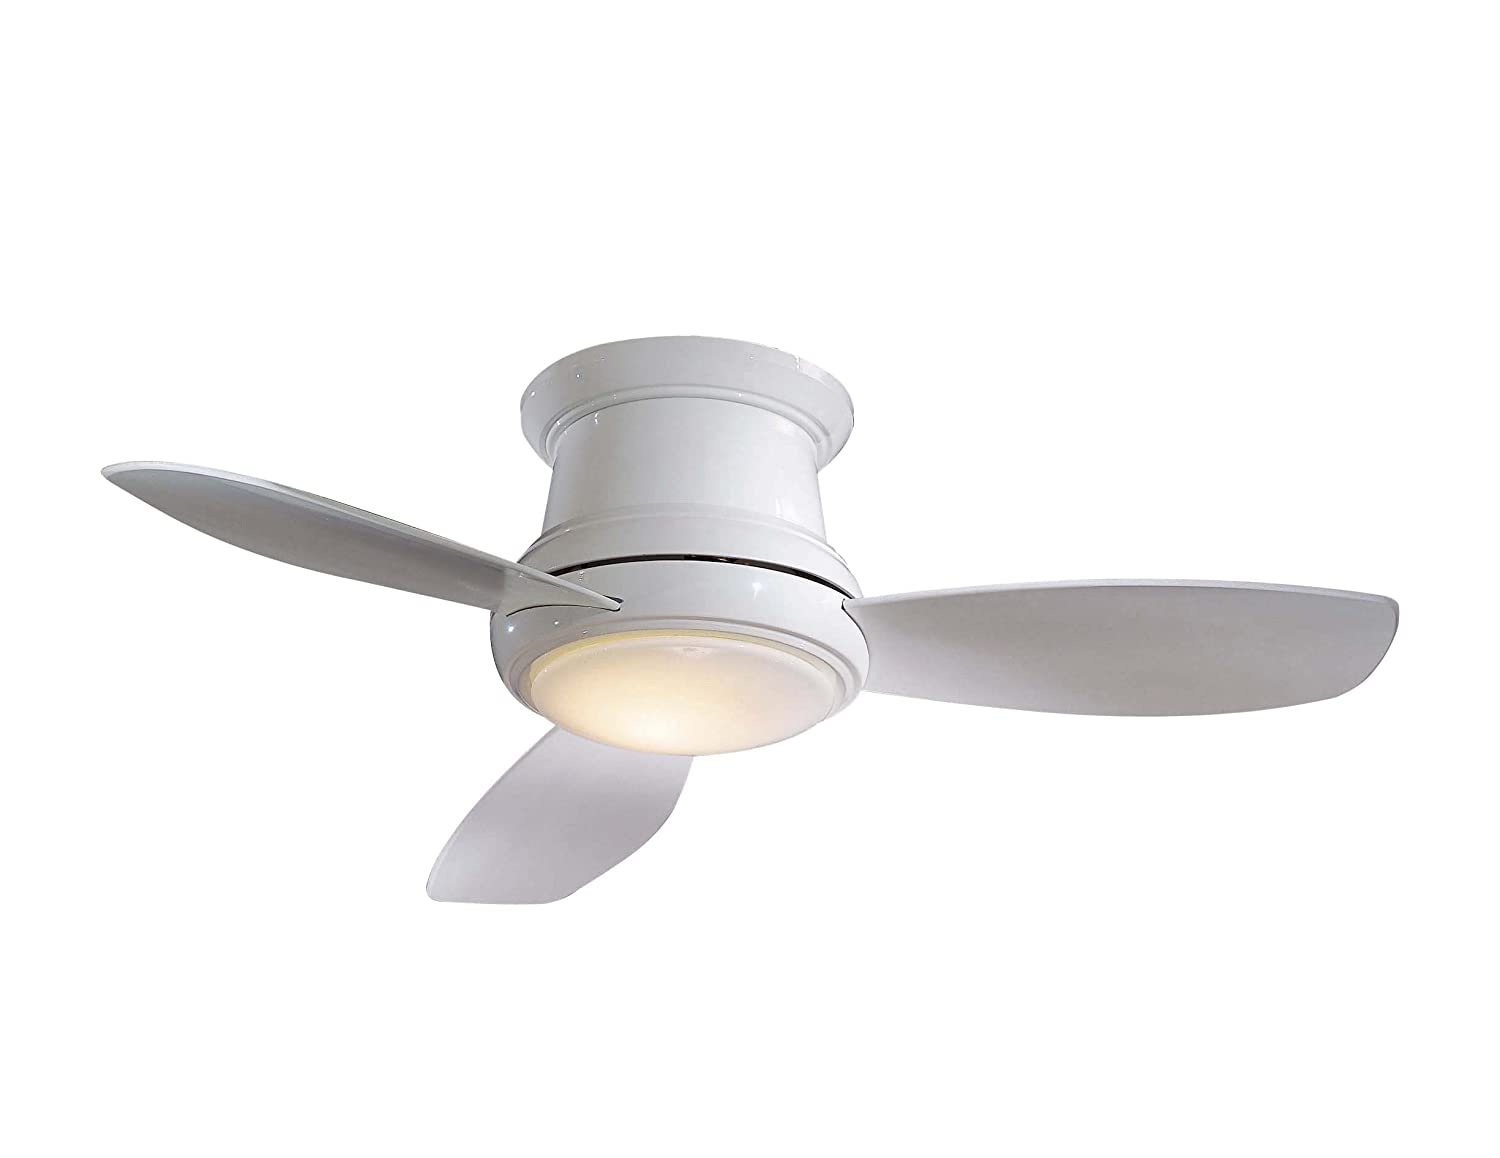 Minka Aire F519 Wh Concept Ii 52 Flush Mount Ceiling Fan With Light Remote Control White Flushmount Com